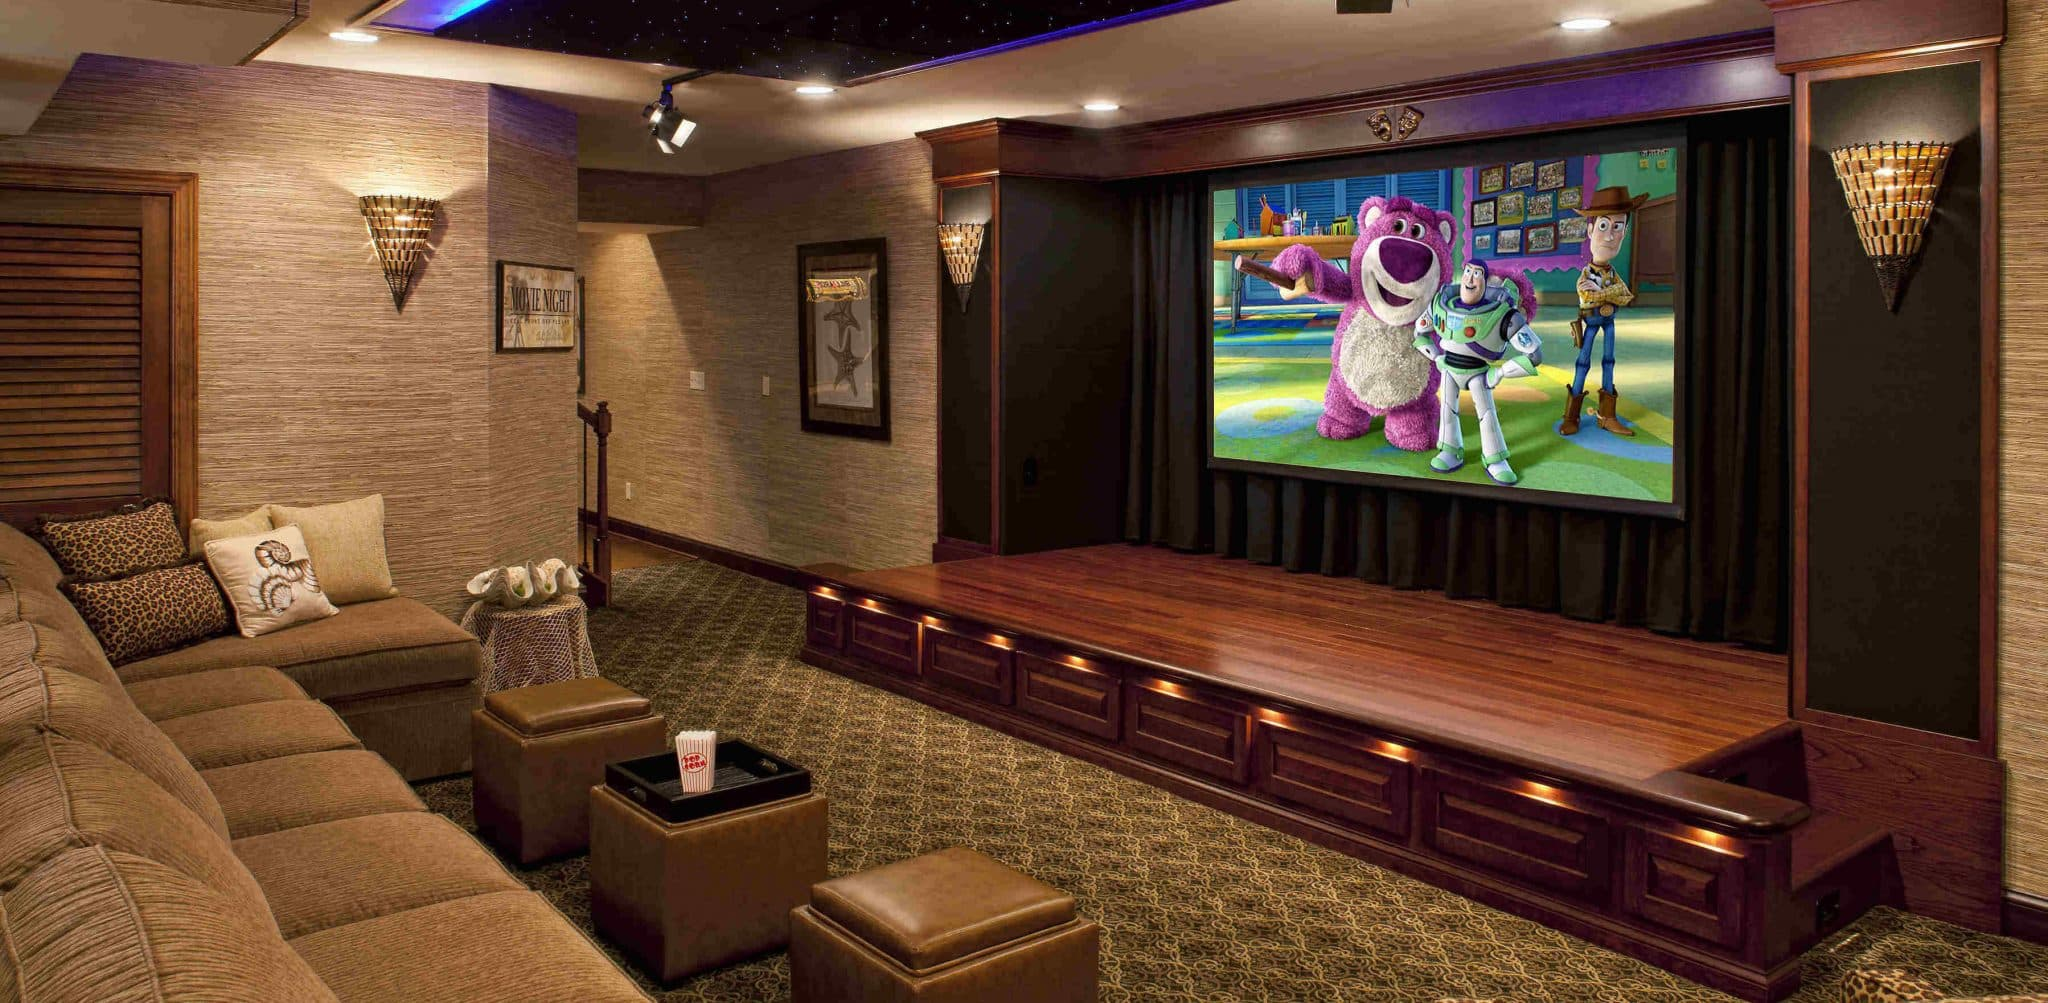 Home Theater Installation Indianapolis | Home Theater Setup Indiana |  Surround System Setup 46234 - Zinga's Home Solutions